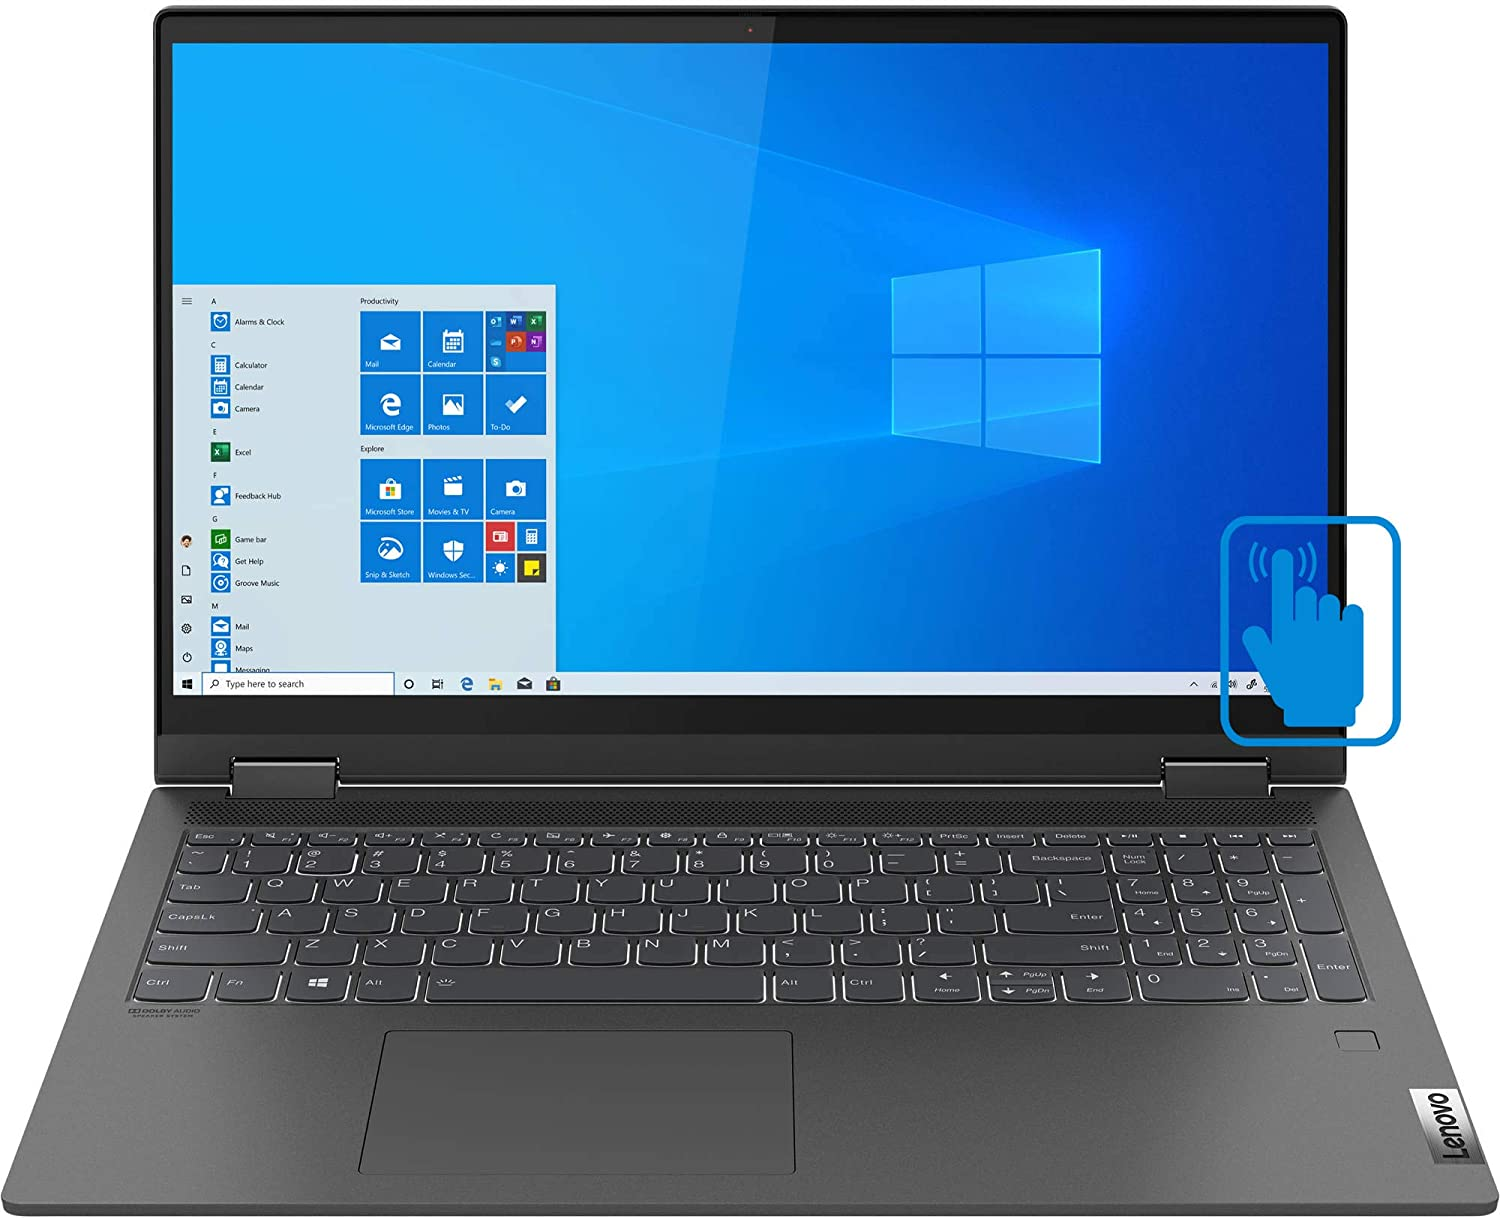 Lenovo IdeaPad Flex 5 15IIL05 81X3000VUS (Intel i7-1065G7 4-Core, 16GB RAM, 512GB SSD, Intel Iris Plus, 15.6